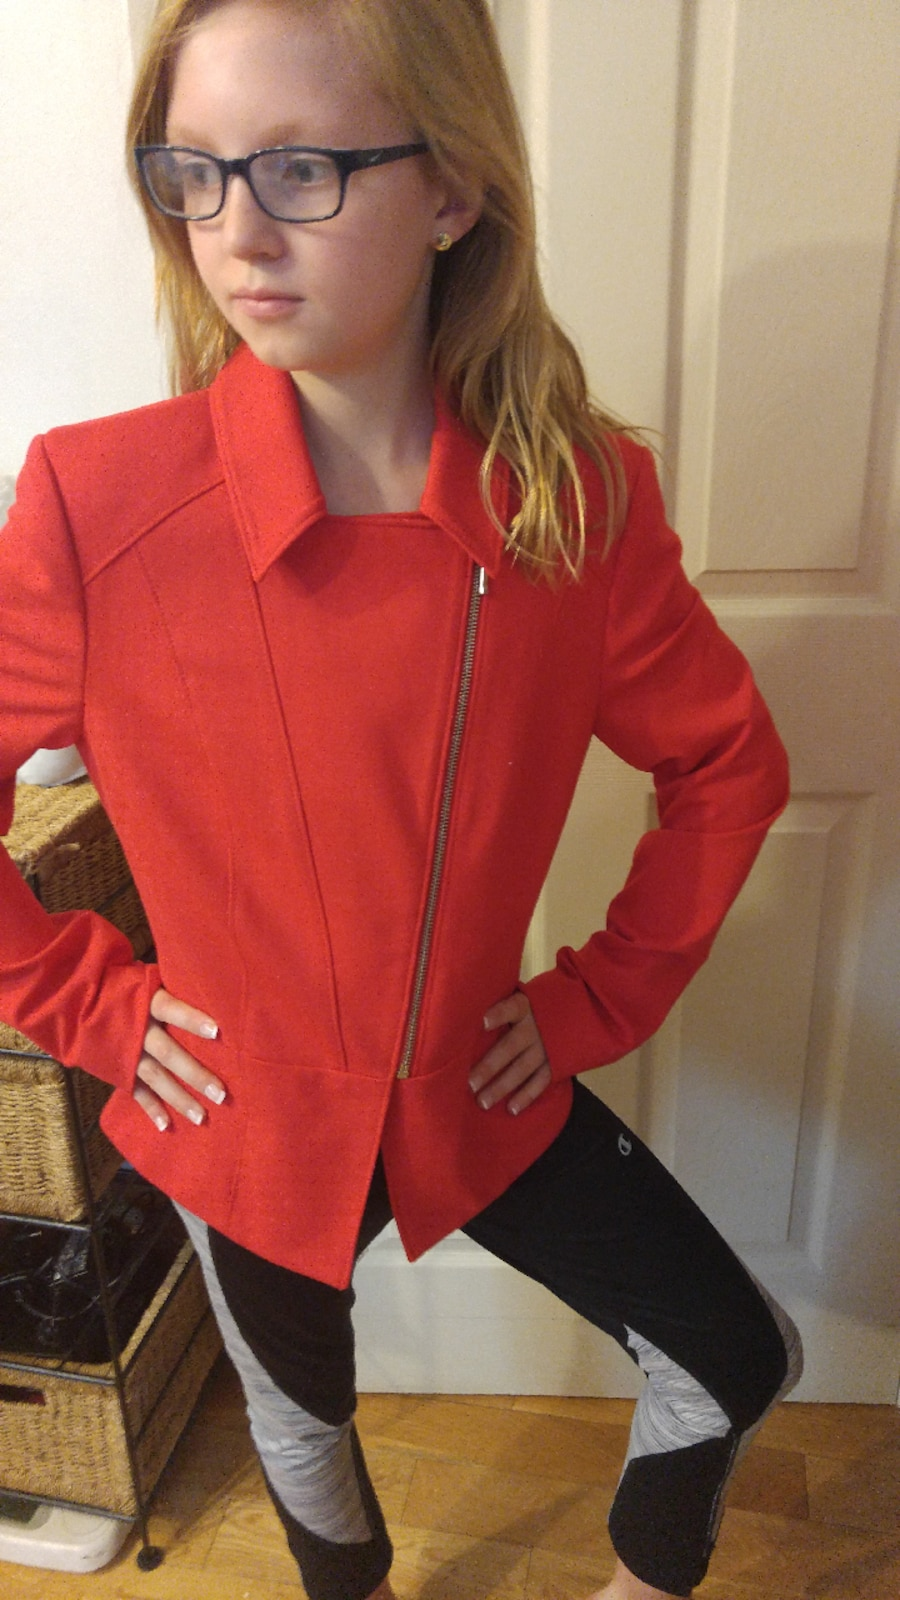 Laura size 4 Red suit jacket - Canada